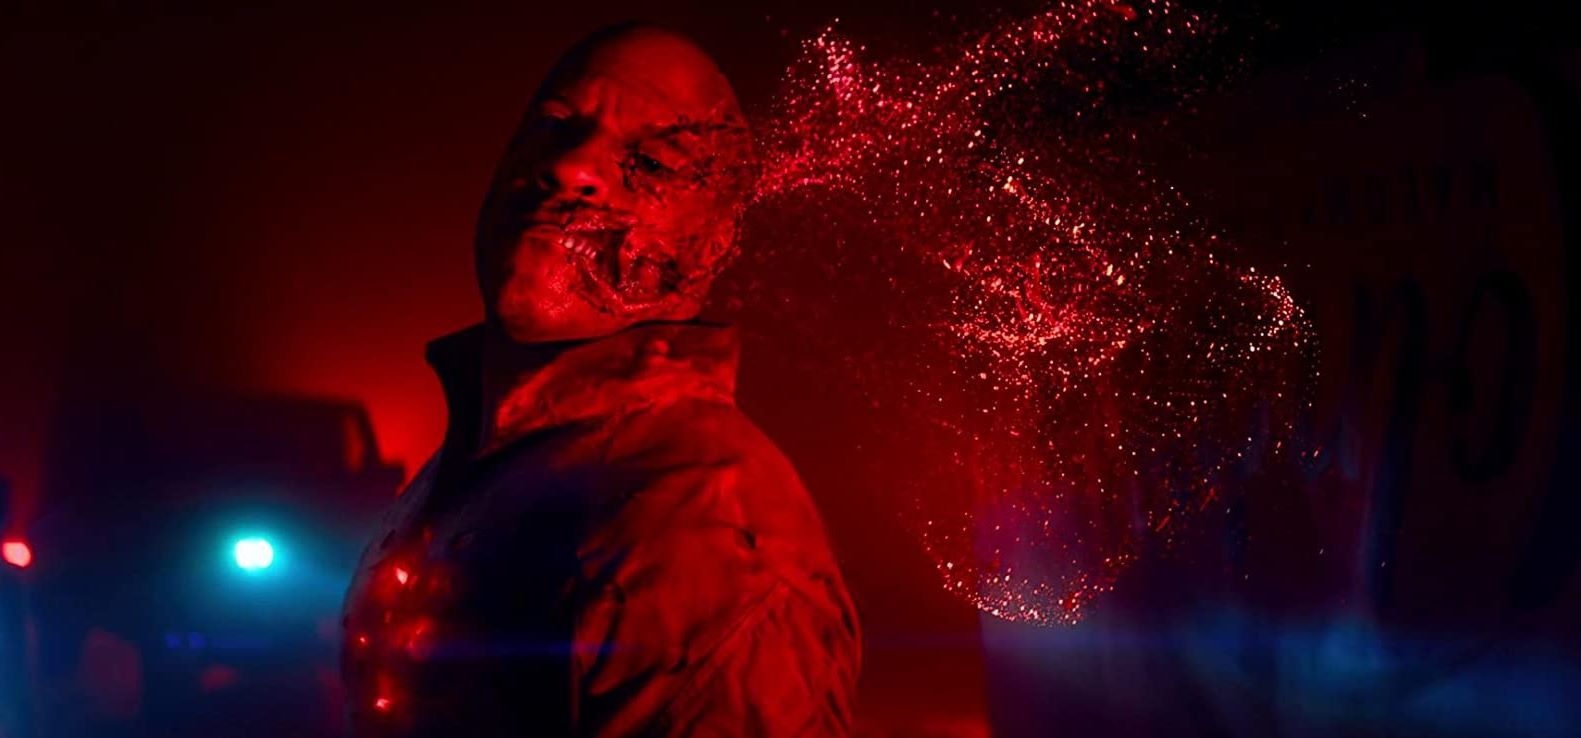 Vin Diesel's cheek explodes in a cloud of nanoparticles in Bloodshot (2020)